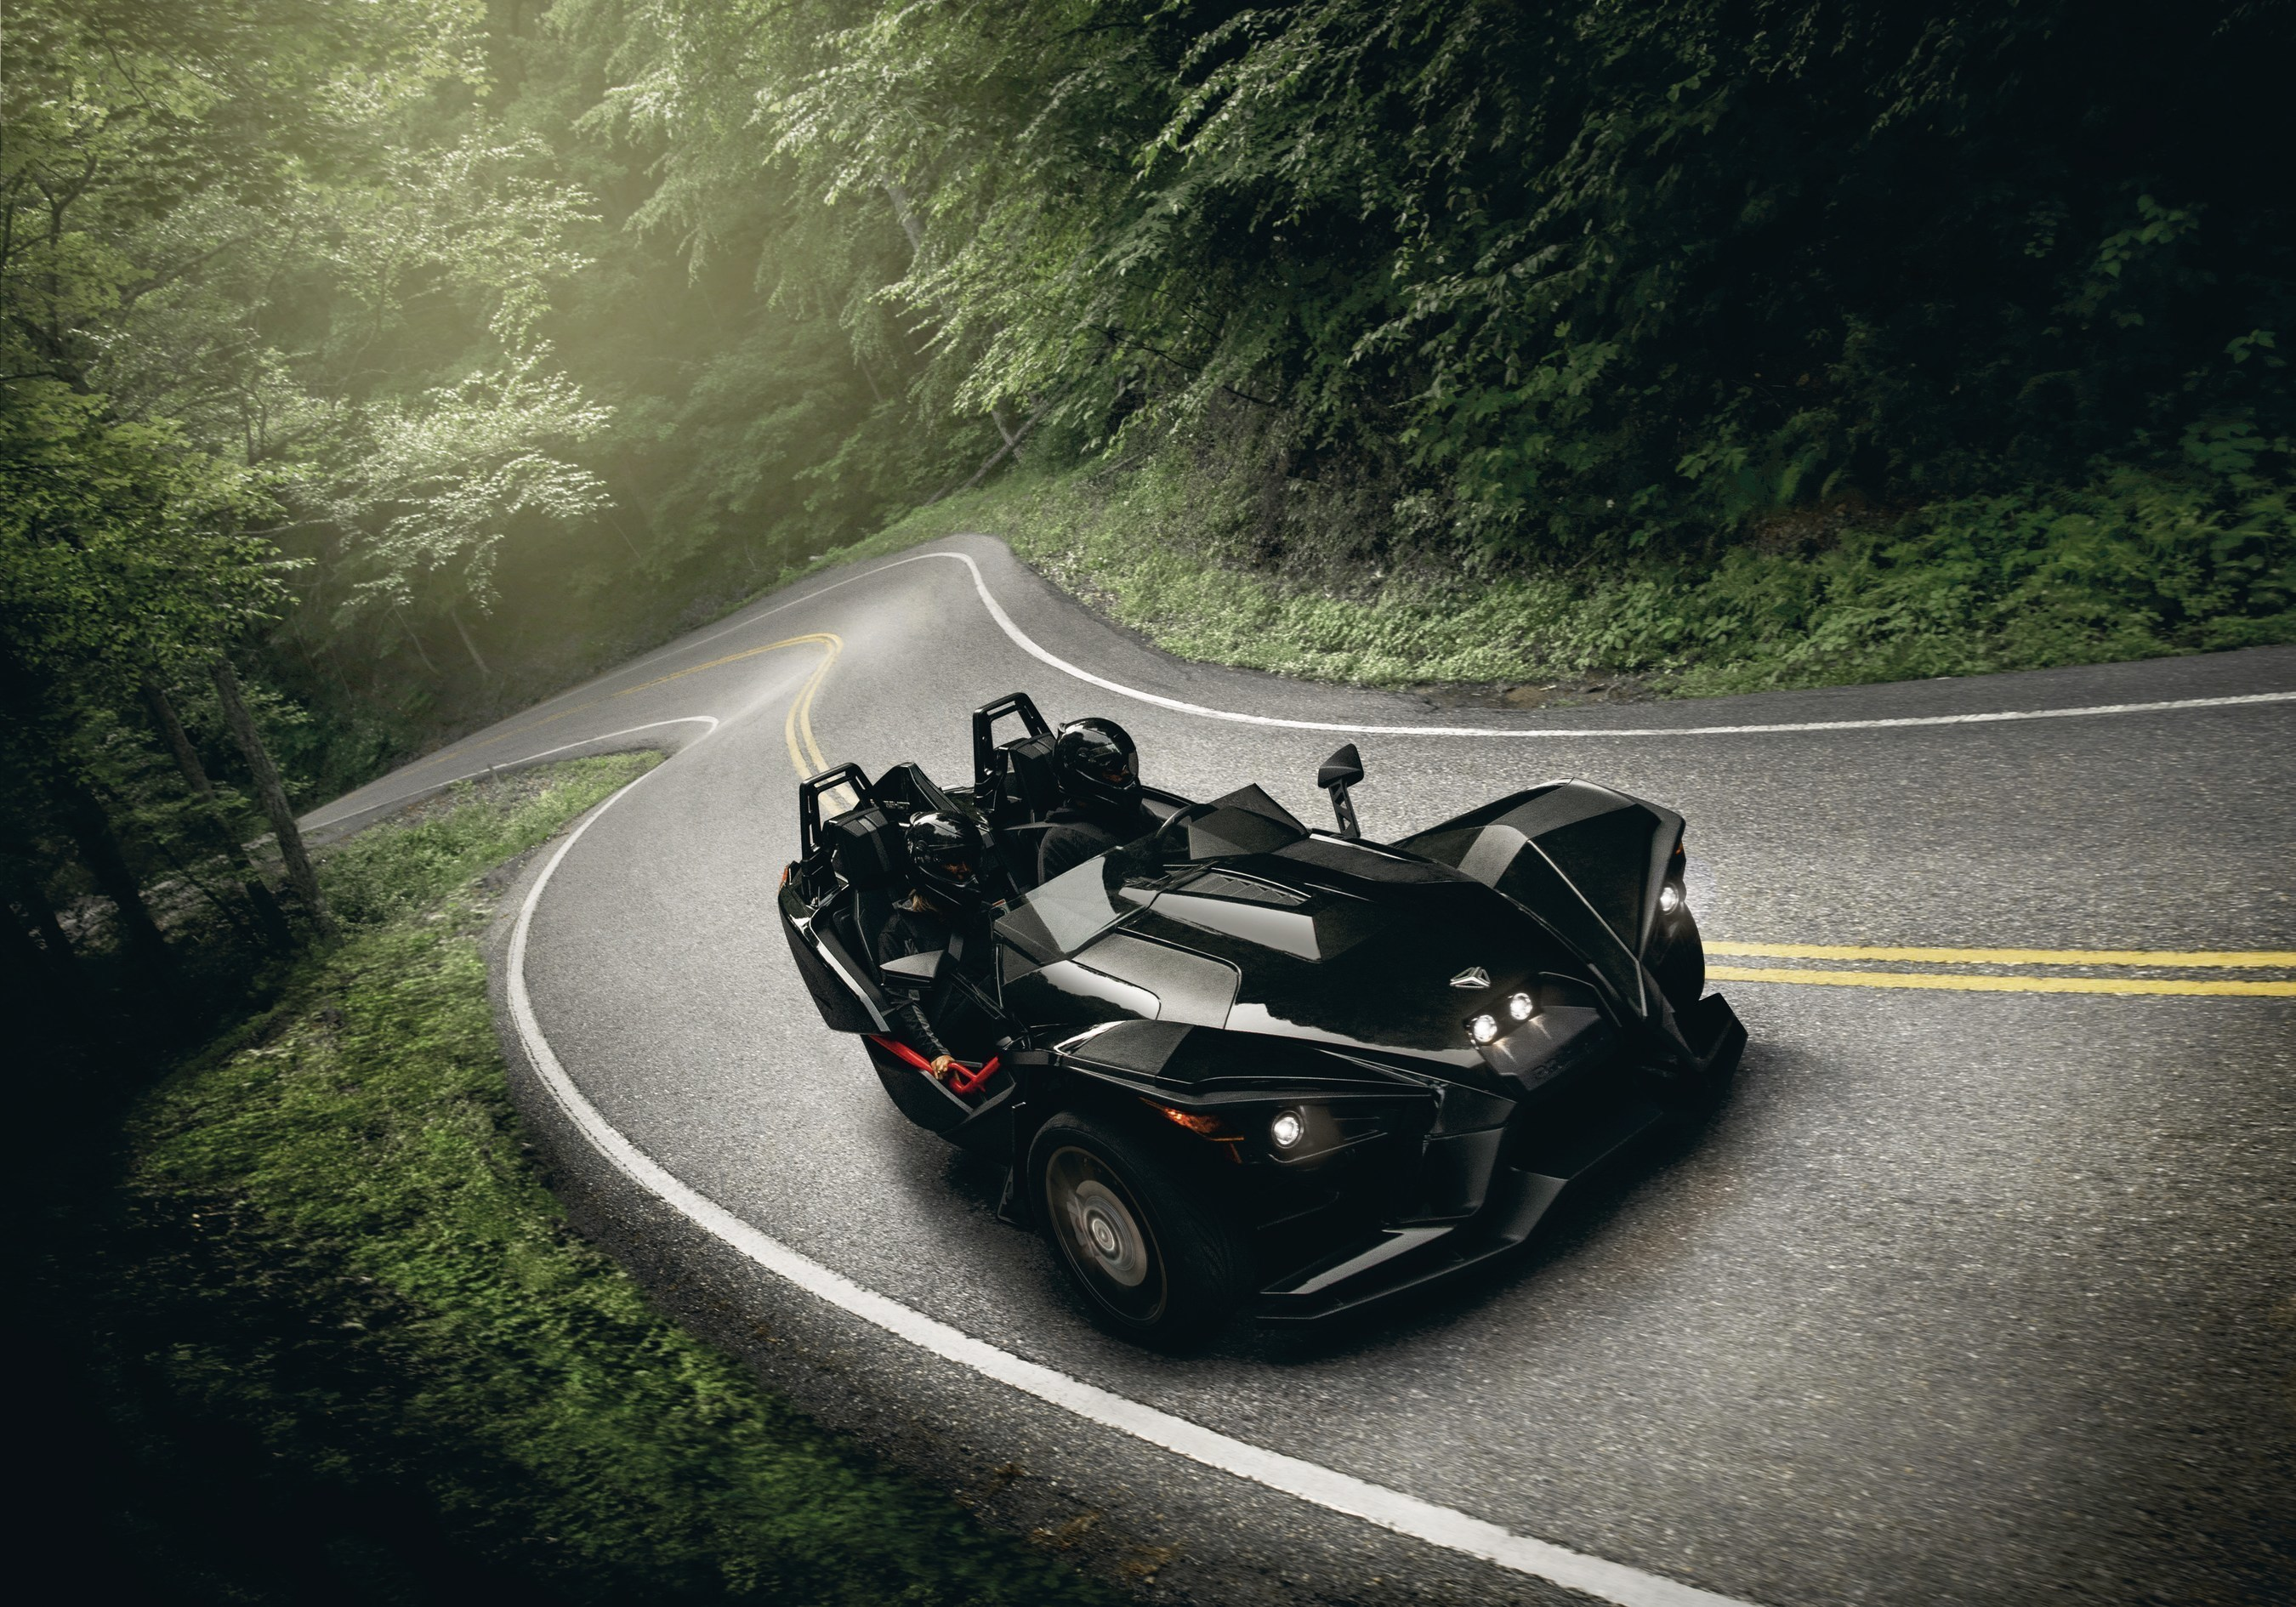 Polaris(R) Slingshot(R) is adding a striking new edition to its line-up - the Black Pearl SL Limited Edition - starting this August.